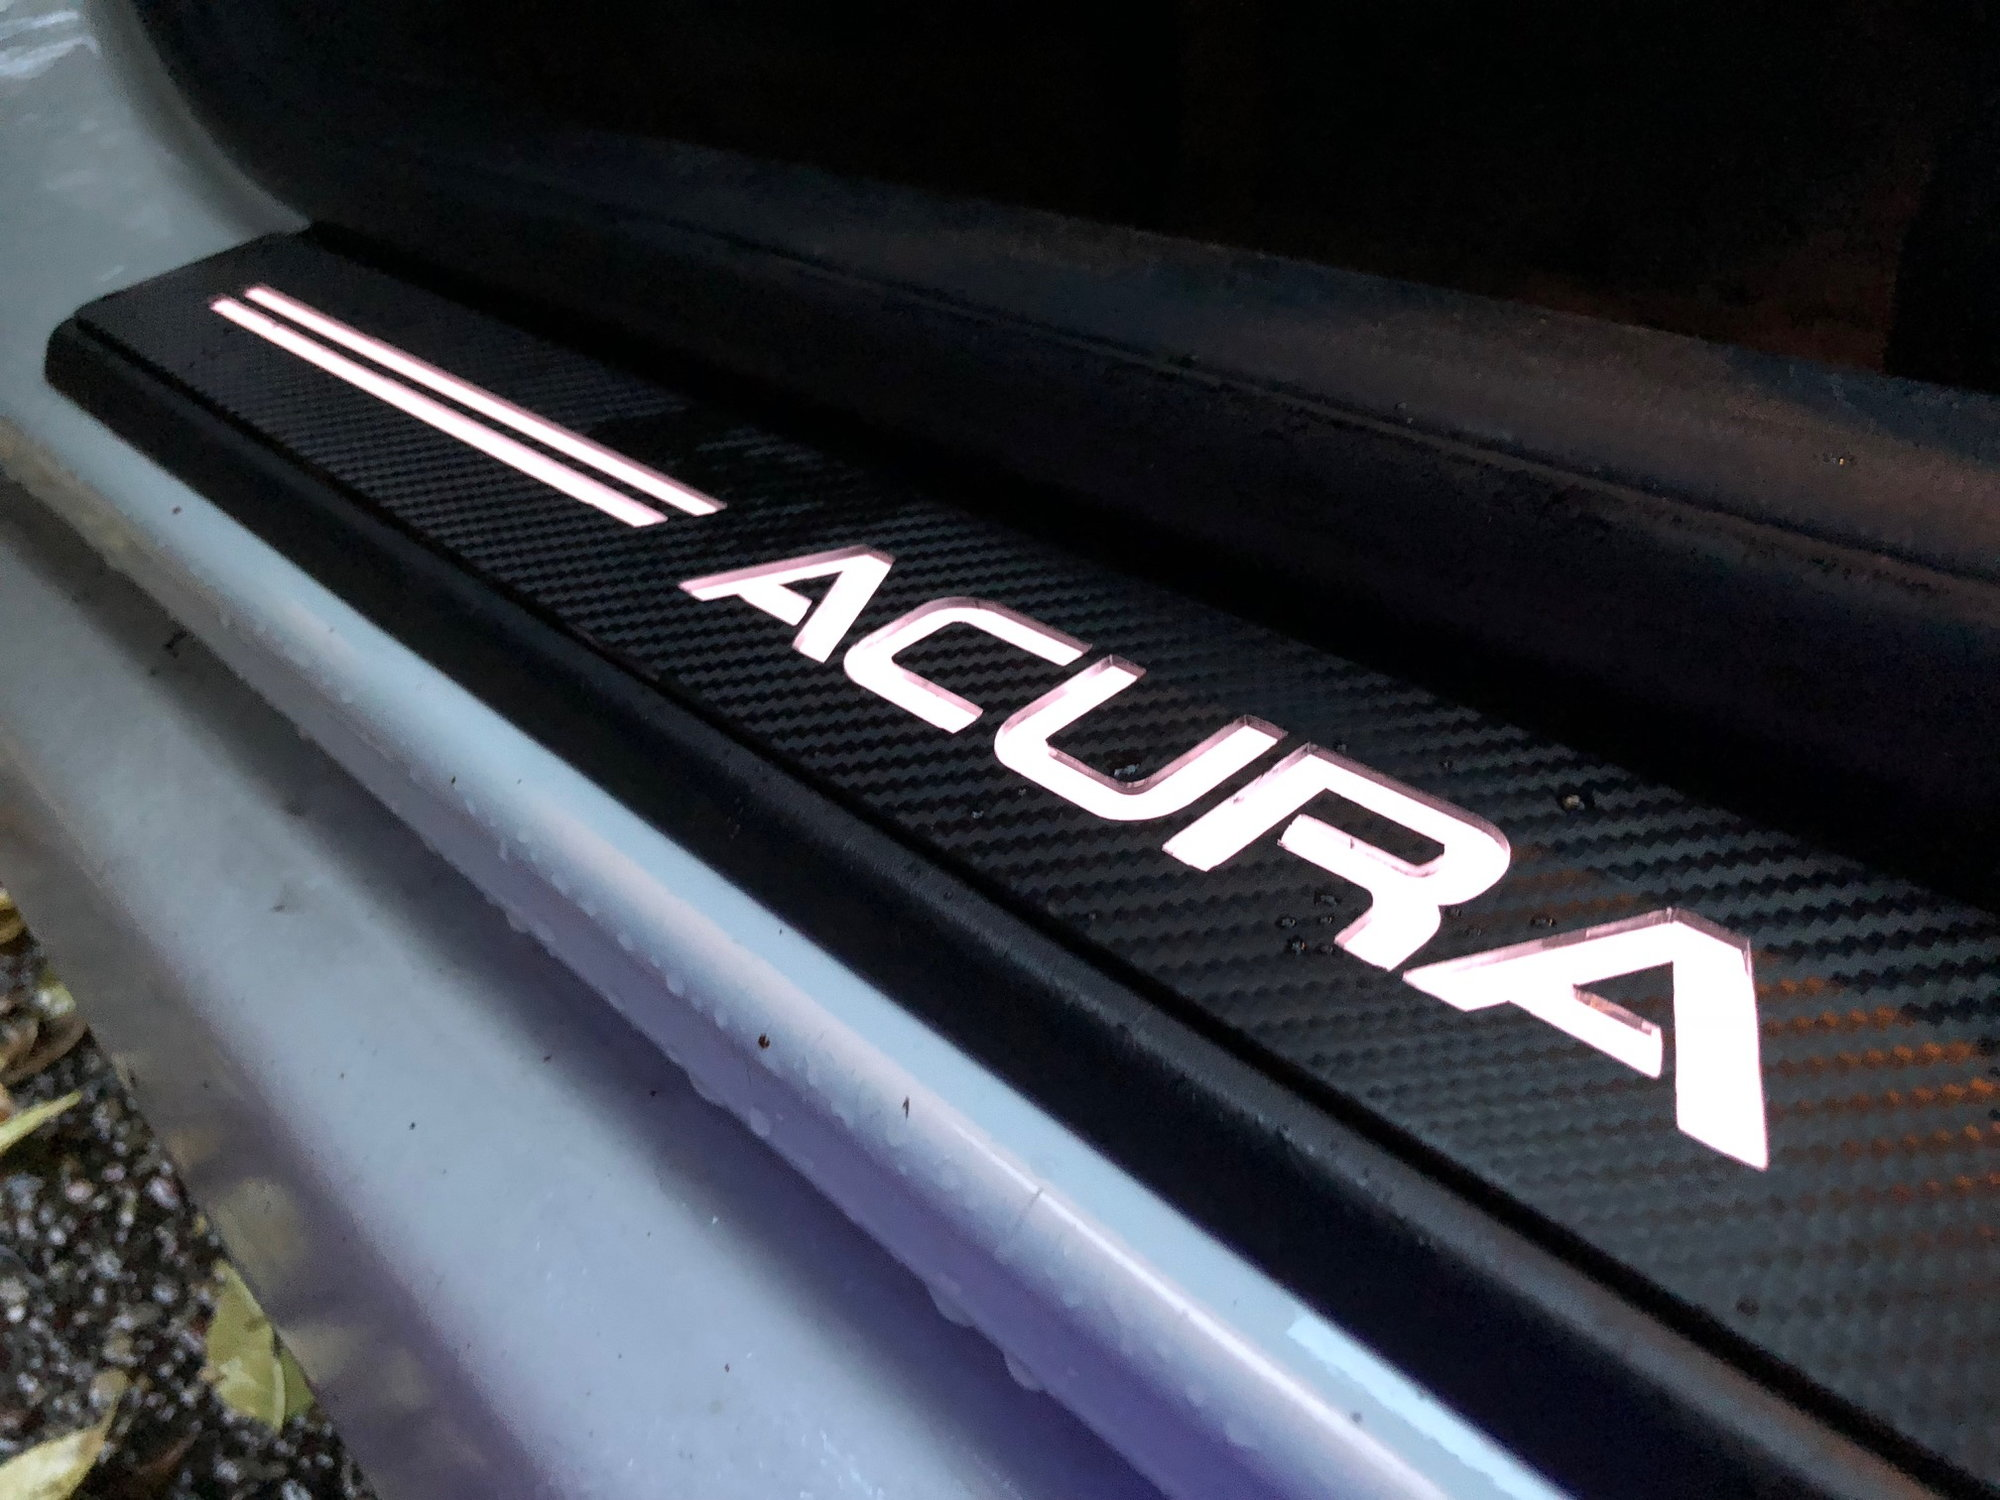 Diy Illuminated Door Sills Acurazine Acura Enthusiast Community Blue Box Wiring Honda Forum And Car Forums Overall Sorta A Lengthy Process But Very Satisfied With Results